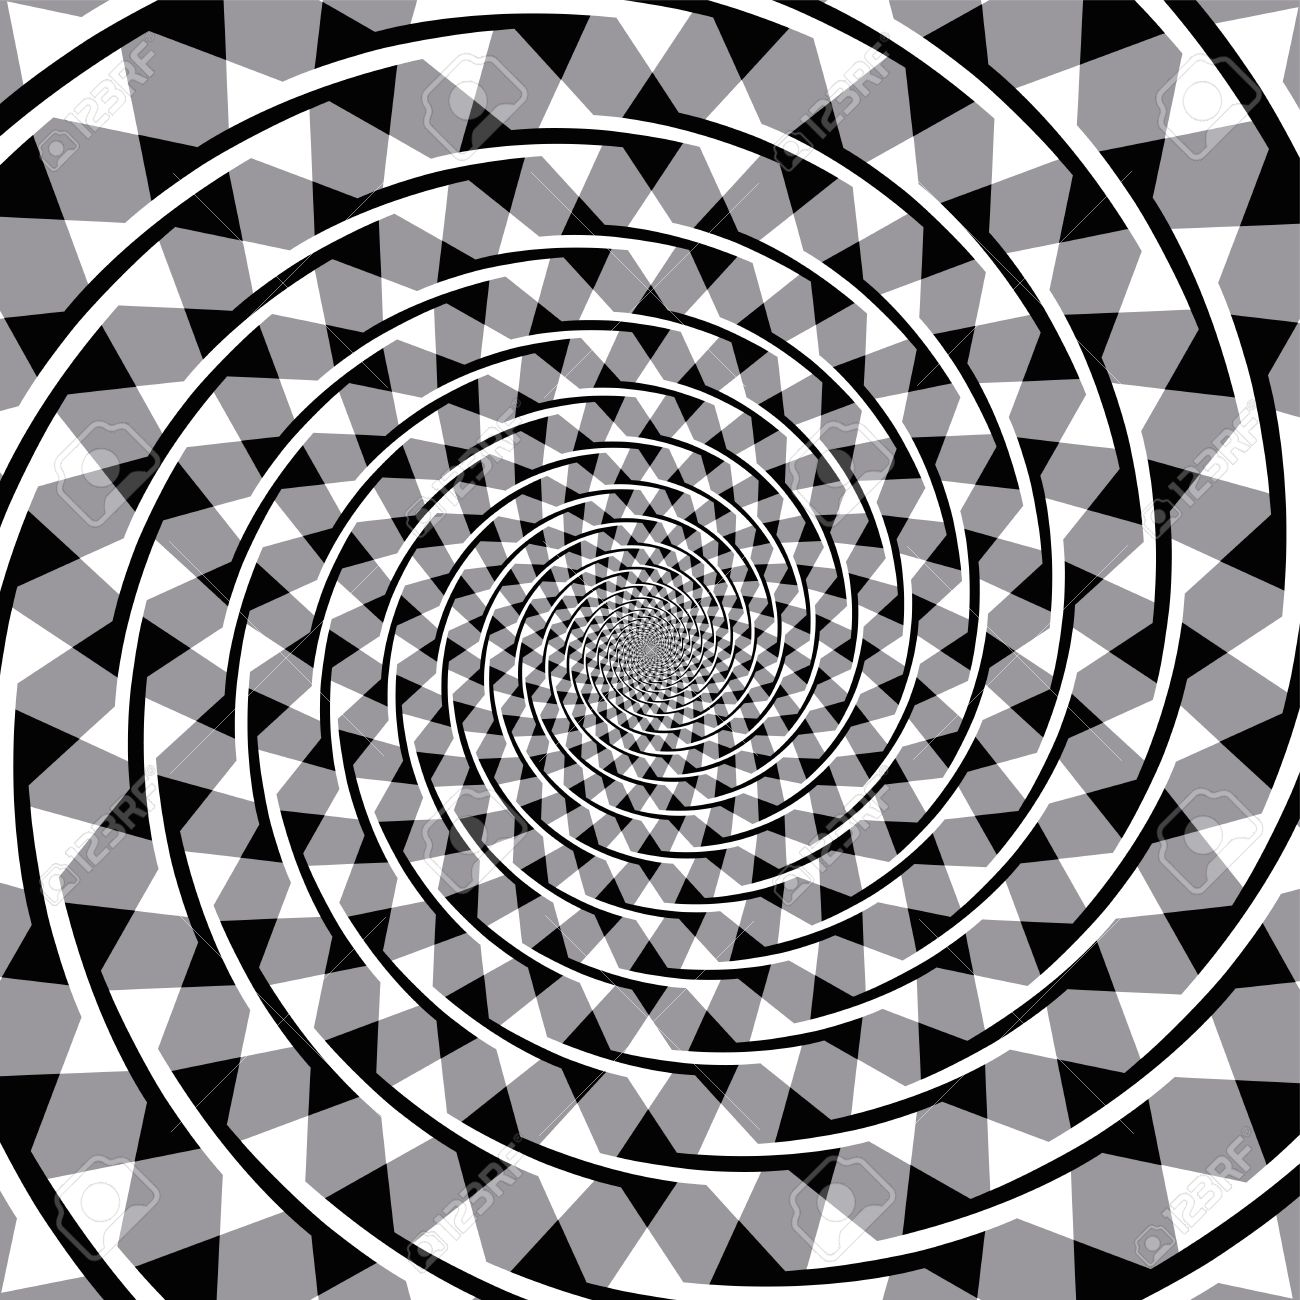 1300x1300 Fraser Spiral Optical Illusion. Also Known As The False Spiral